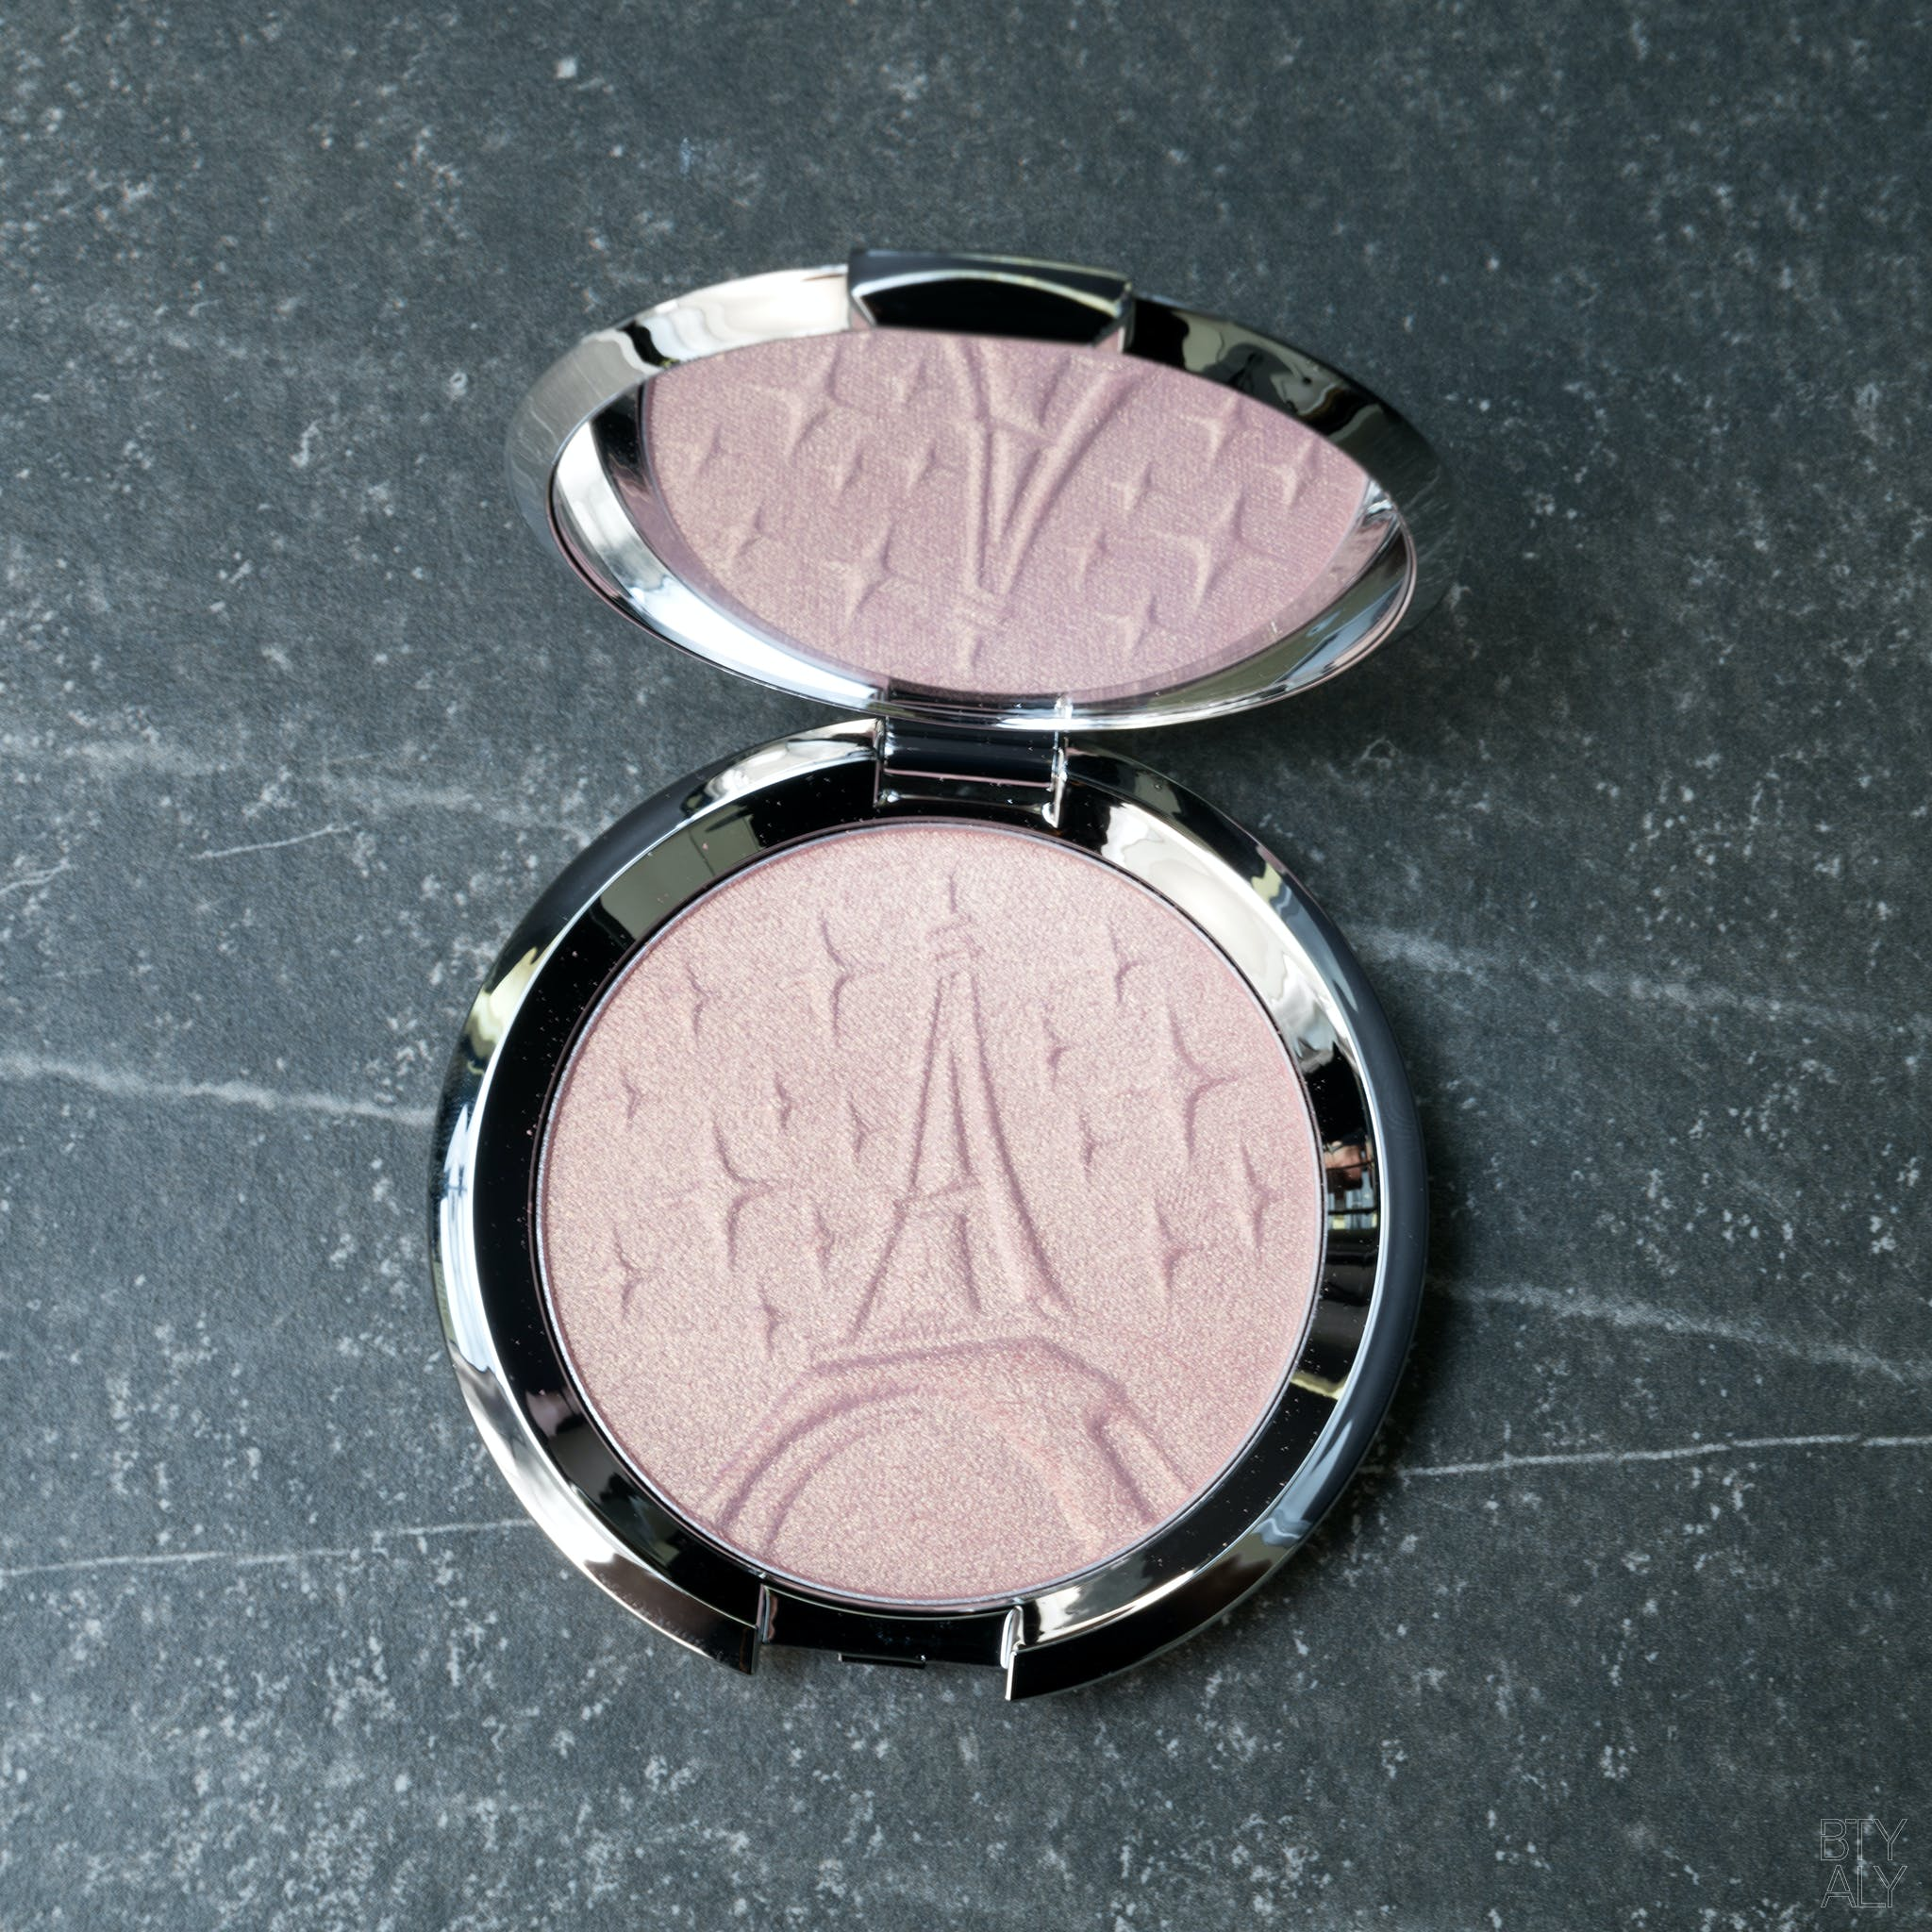 Becca Shimmering Skin Perfector Pressed Parisian Lights